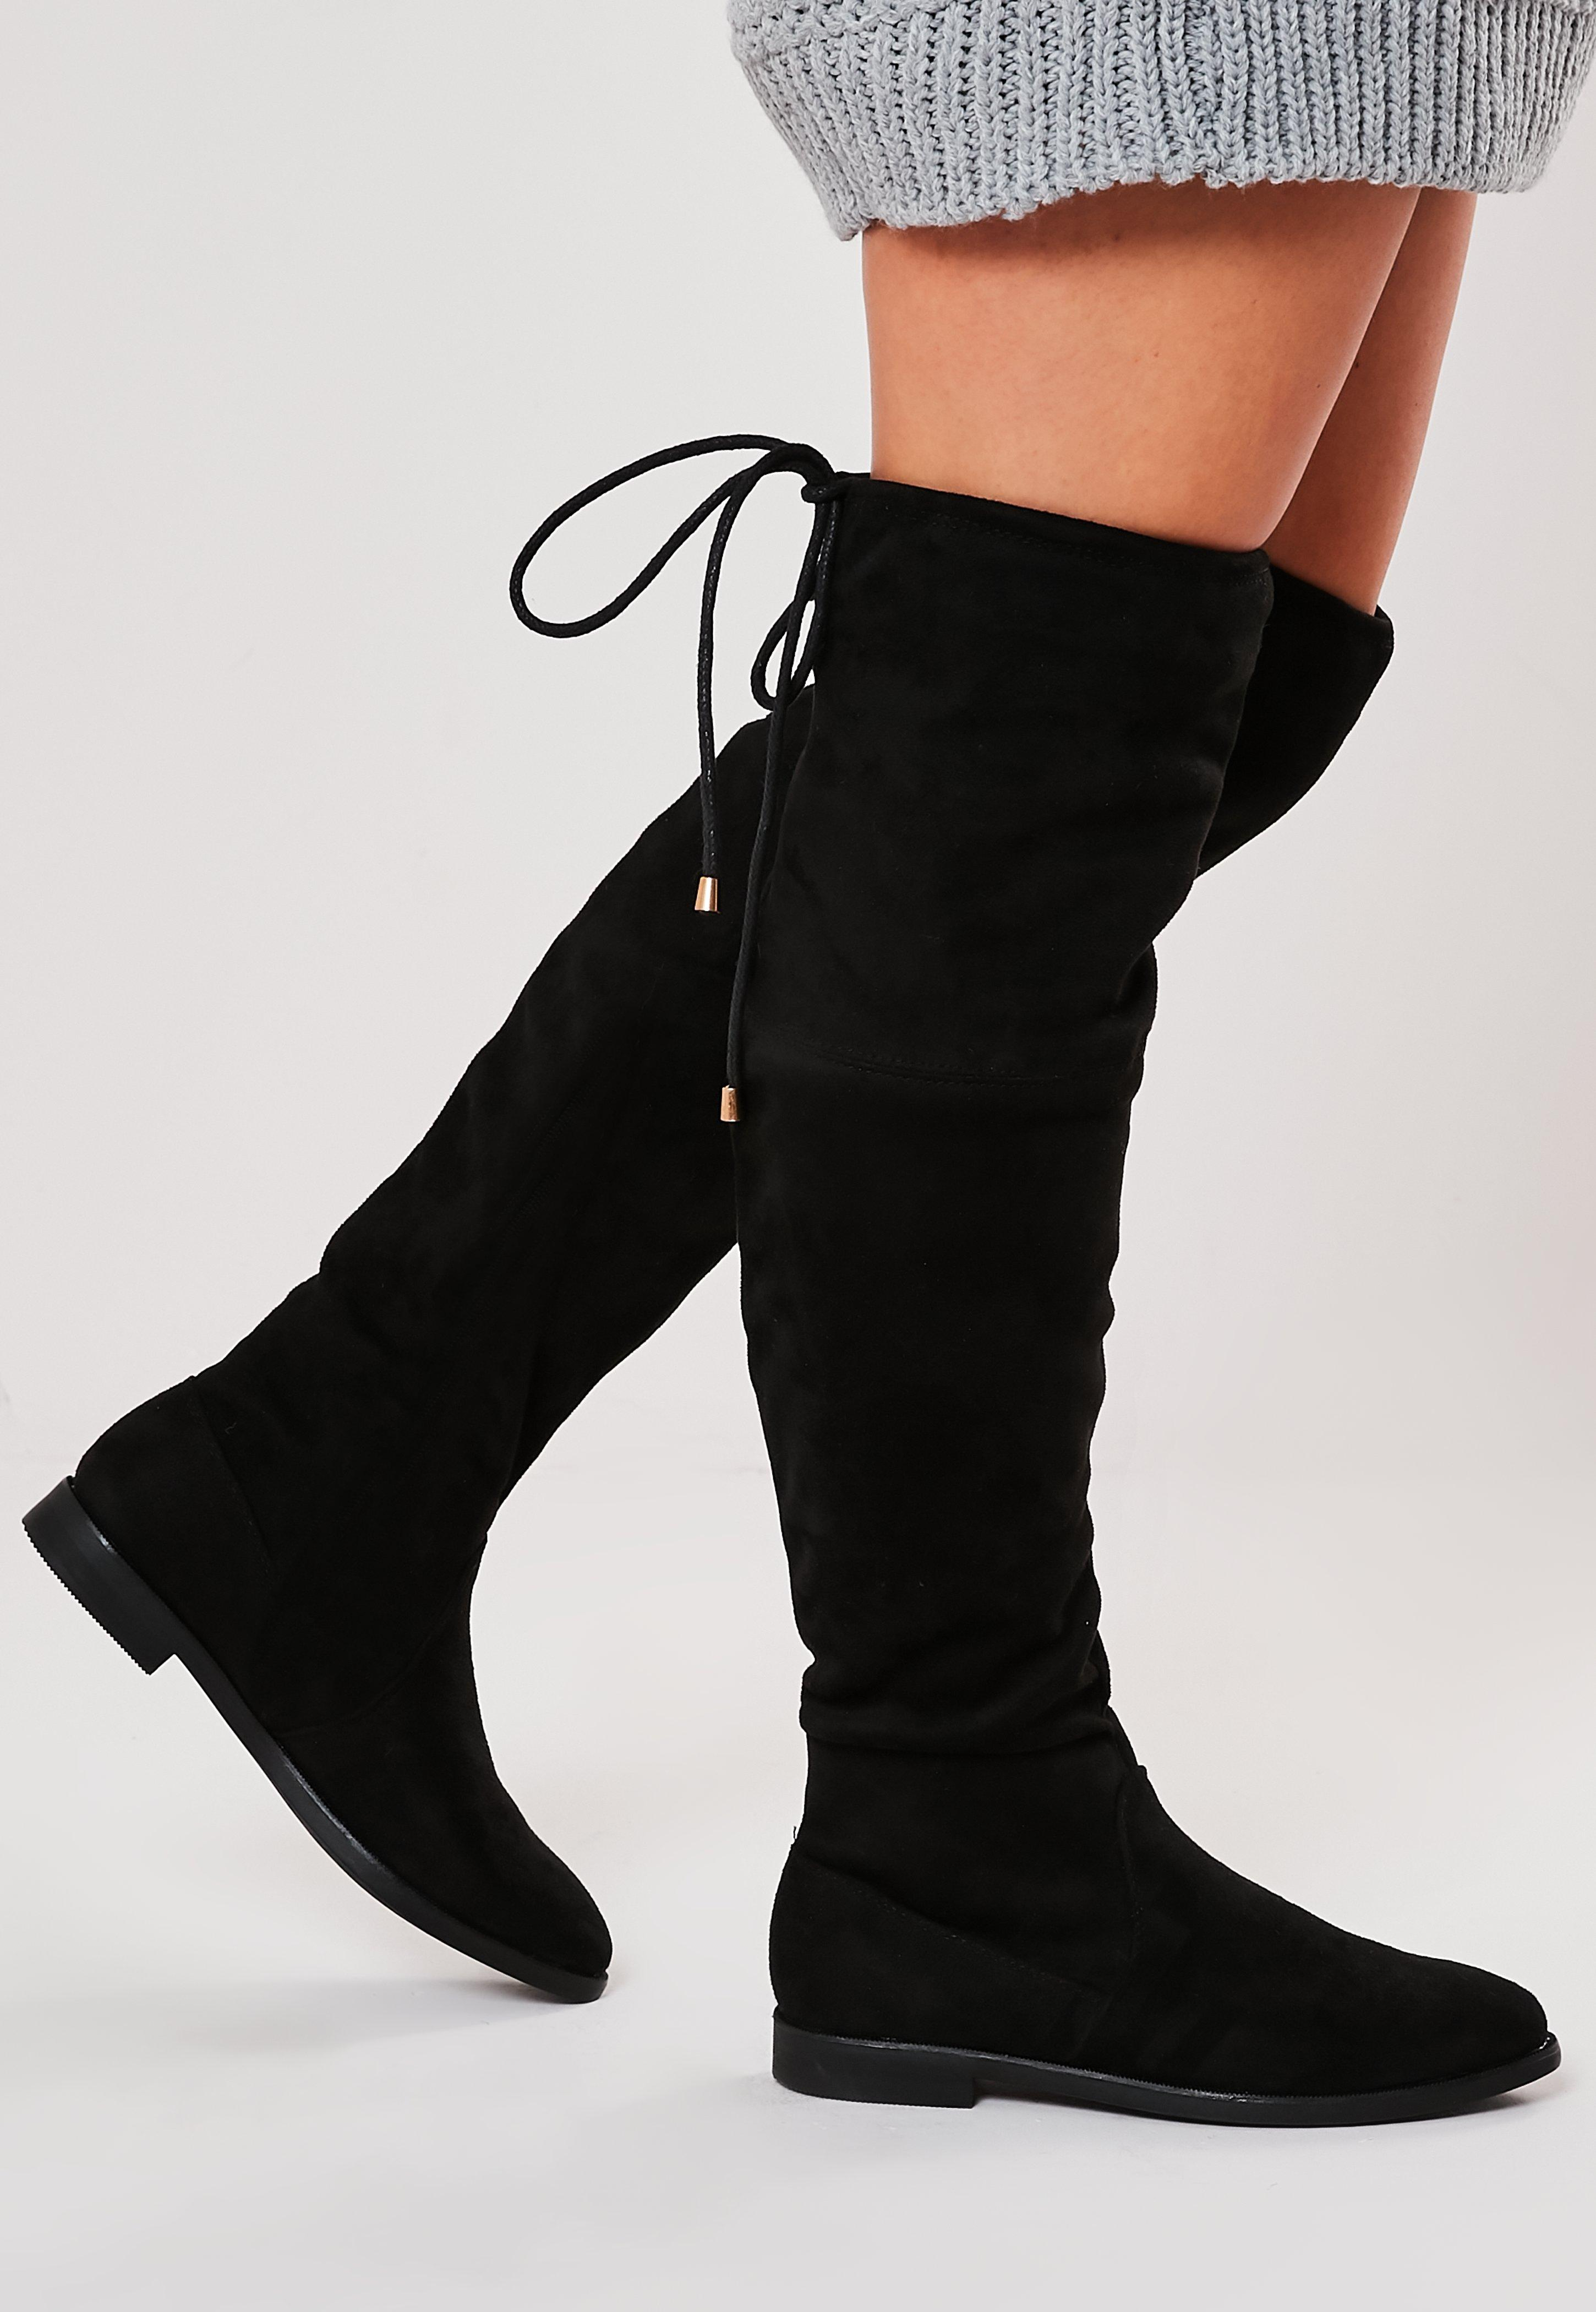 Black Over The Knee Flat Boots | Missguided